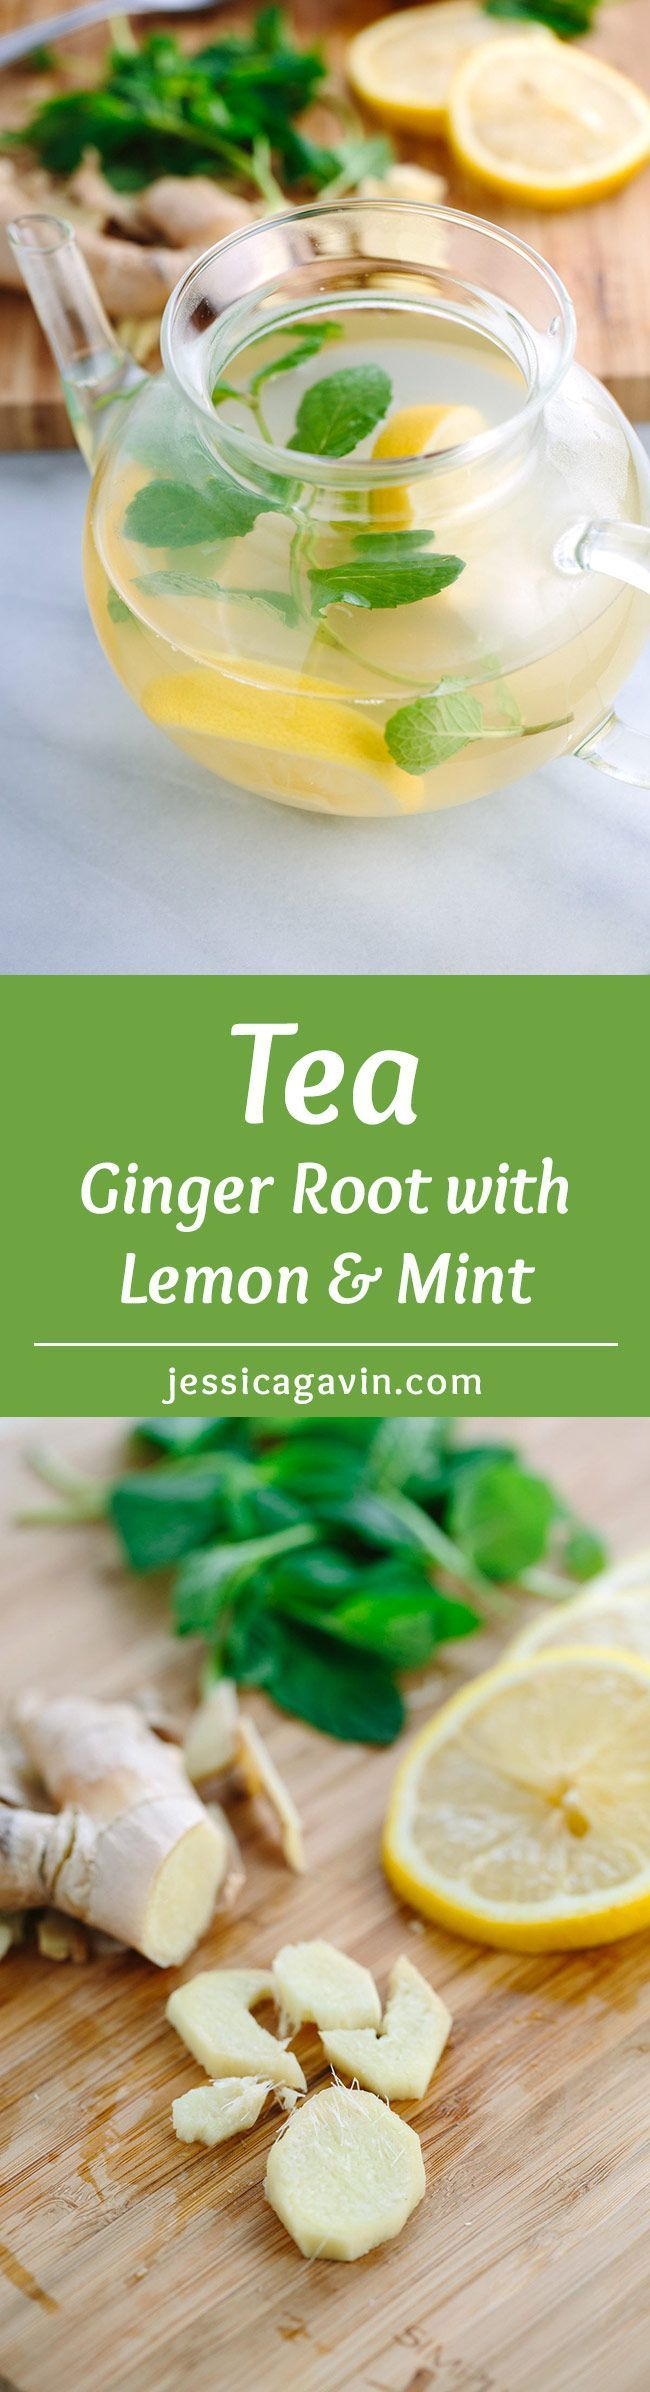 Ginger Root Tea with Lemon and Mint - Three simple ingredients provide a soothing drink any time of day. With this recipe you can make it as a large pot at home, or single serving on the go. | http://jessicagavin.com